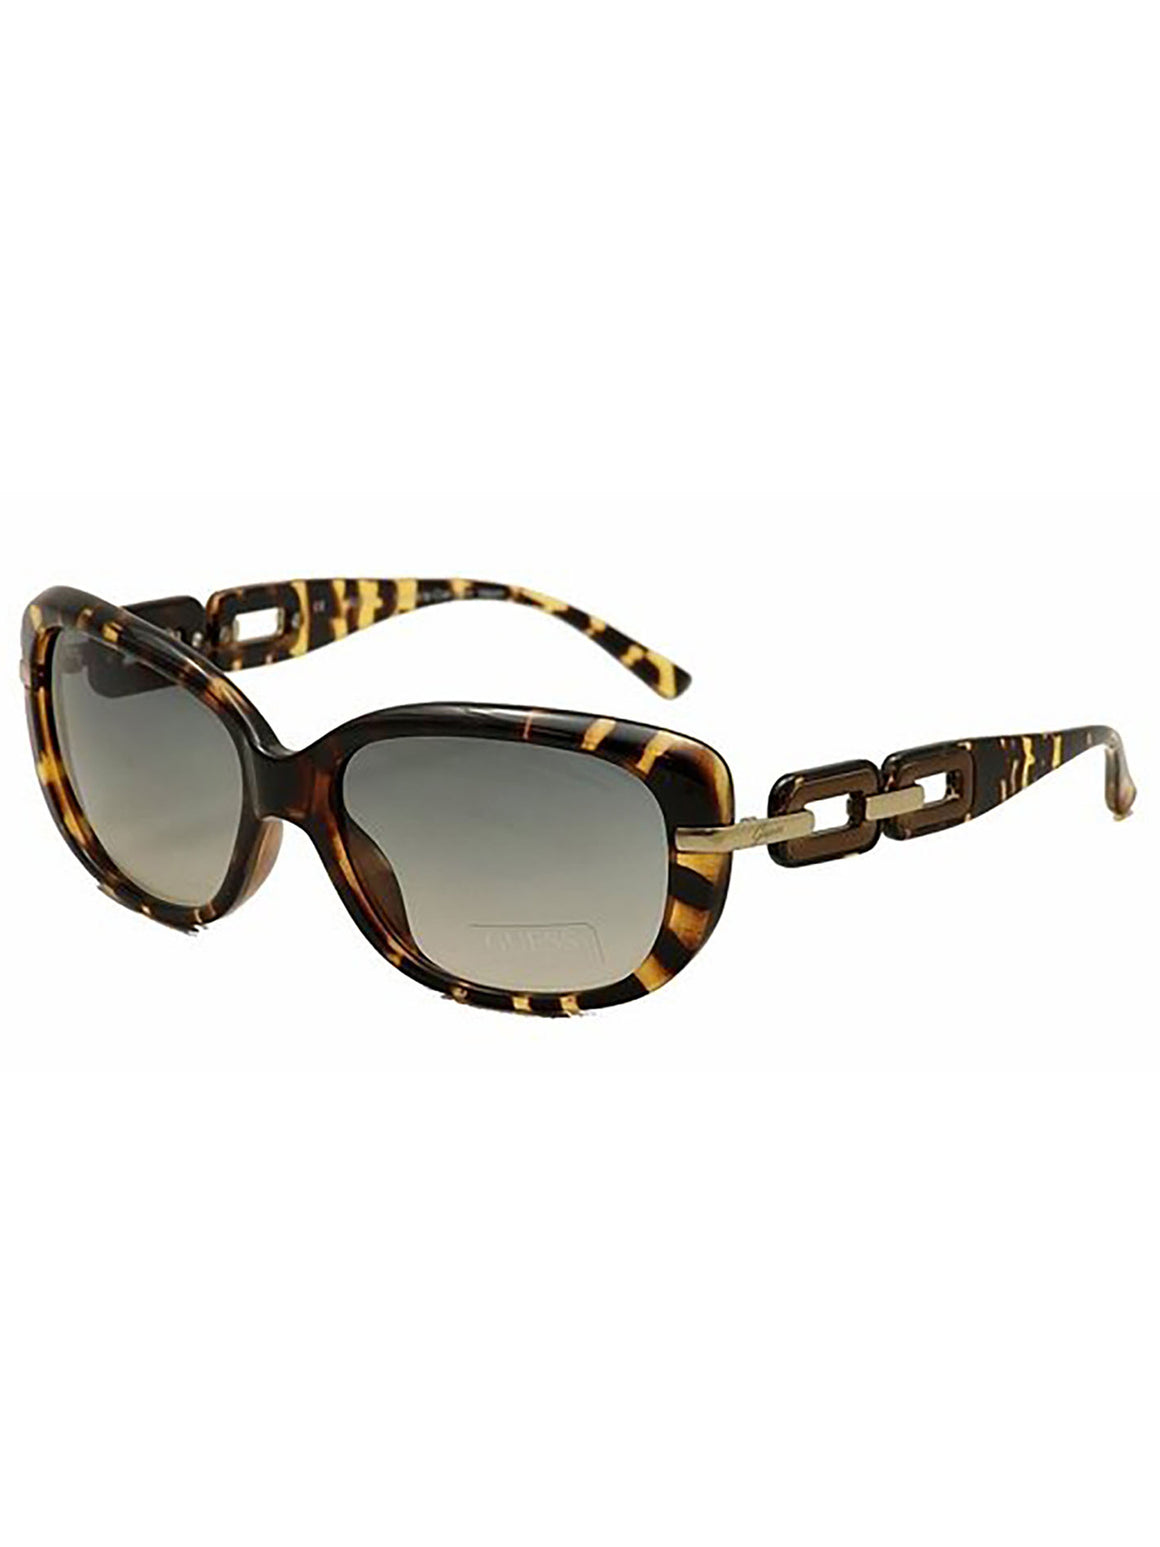 Guess Ladies Tortoise Brown Sunglasses GU7273 59S57